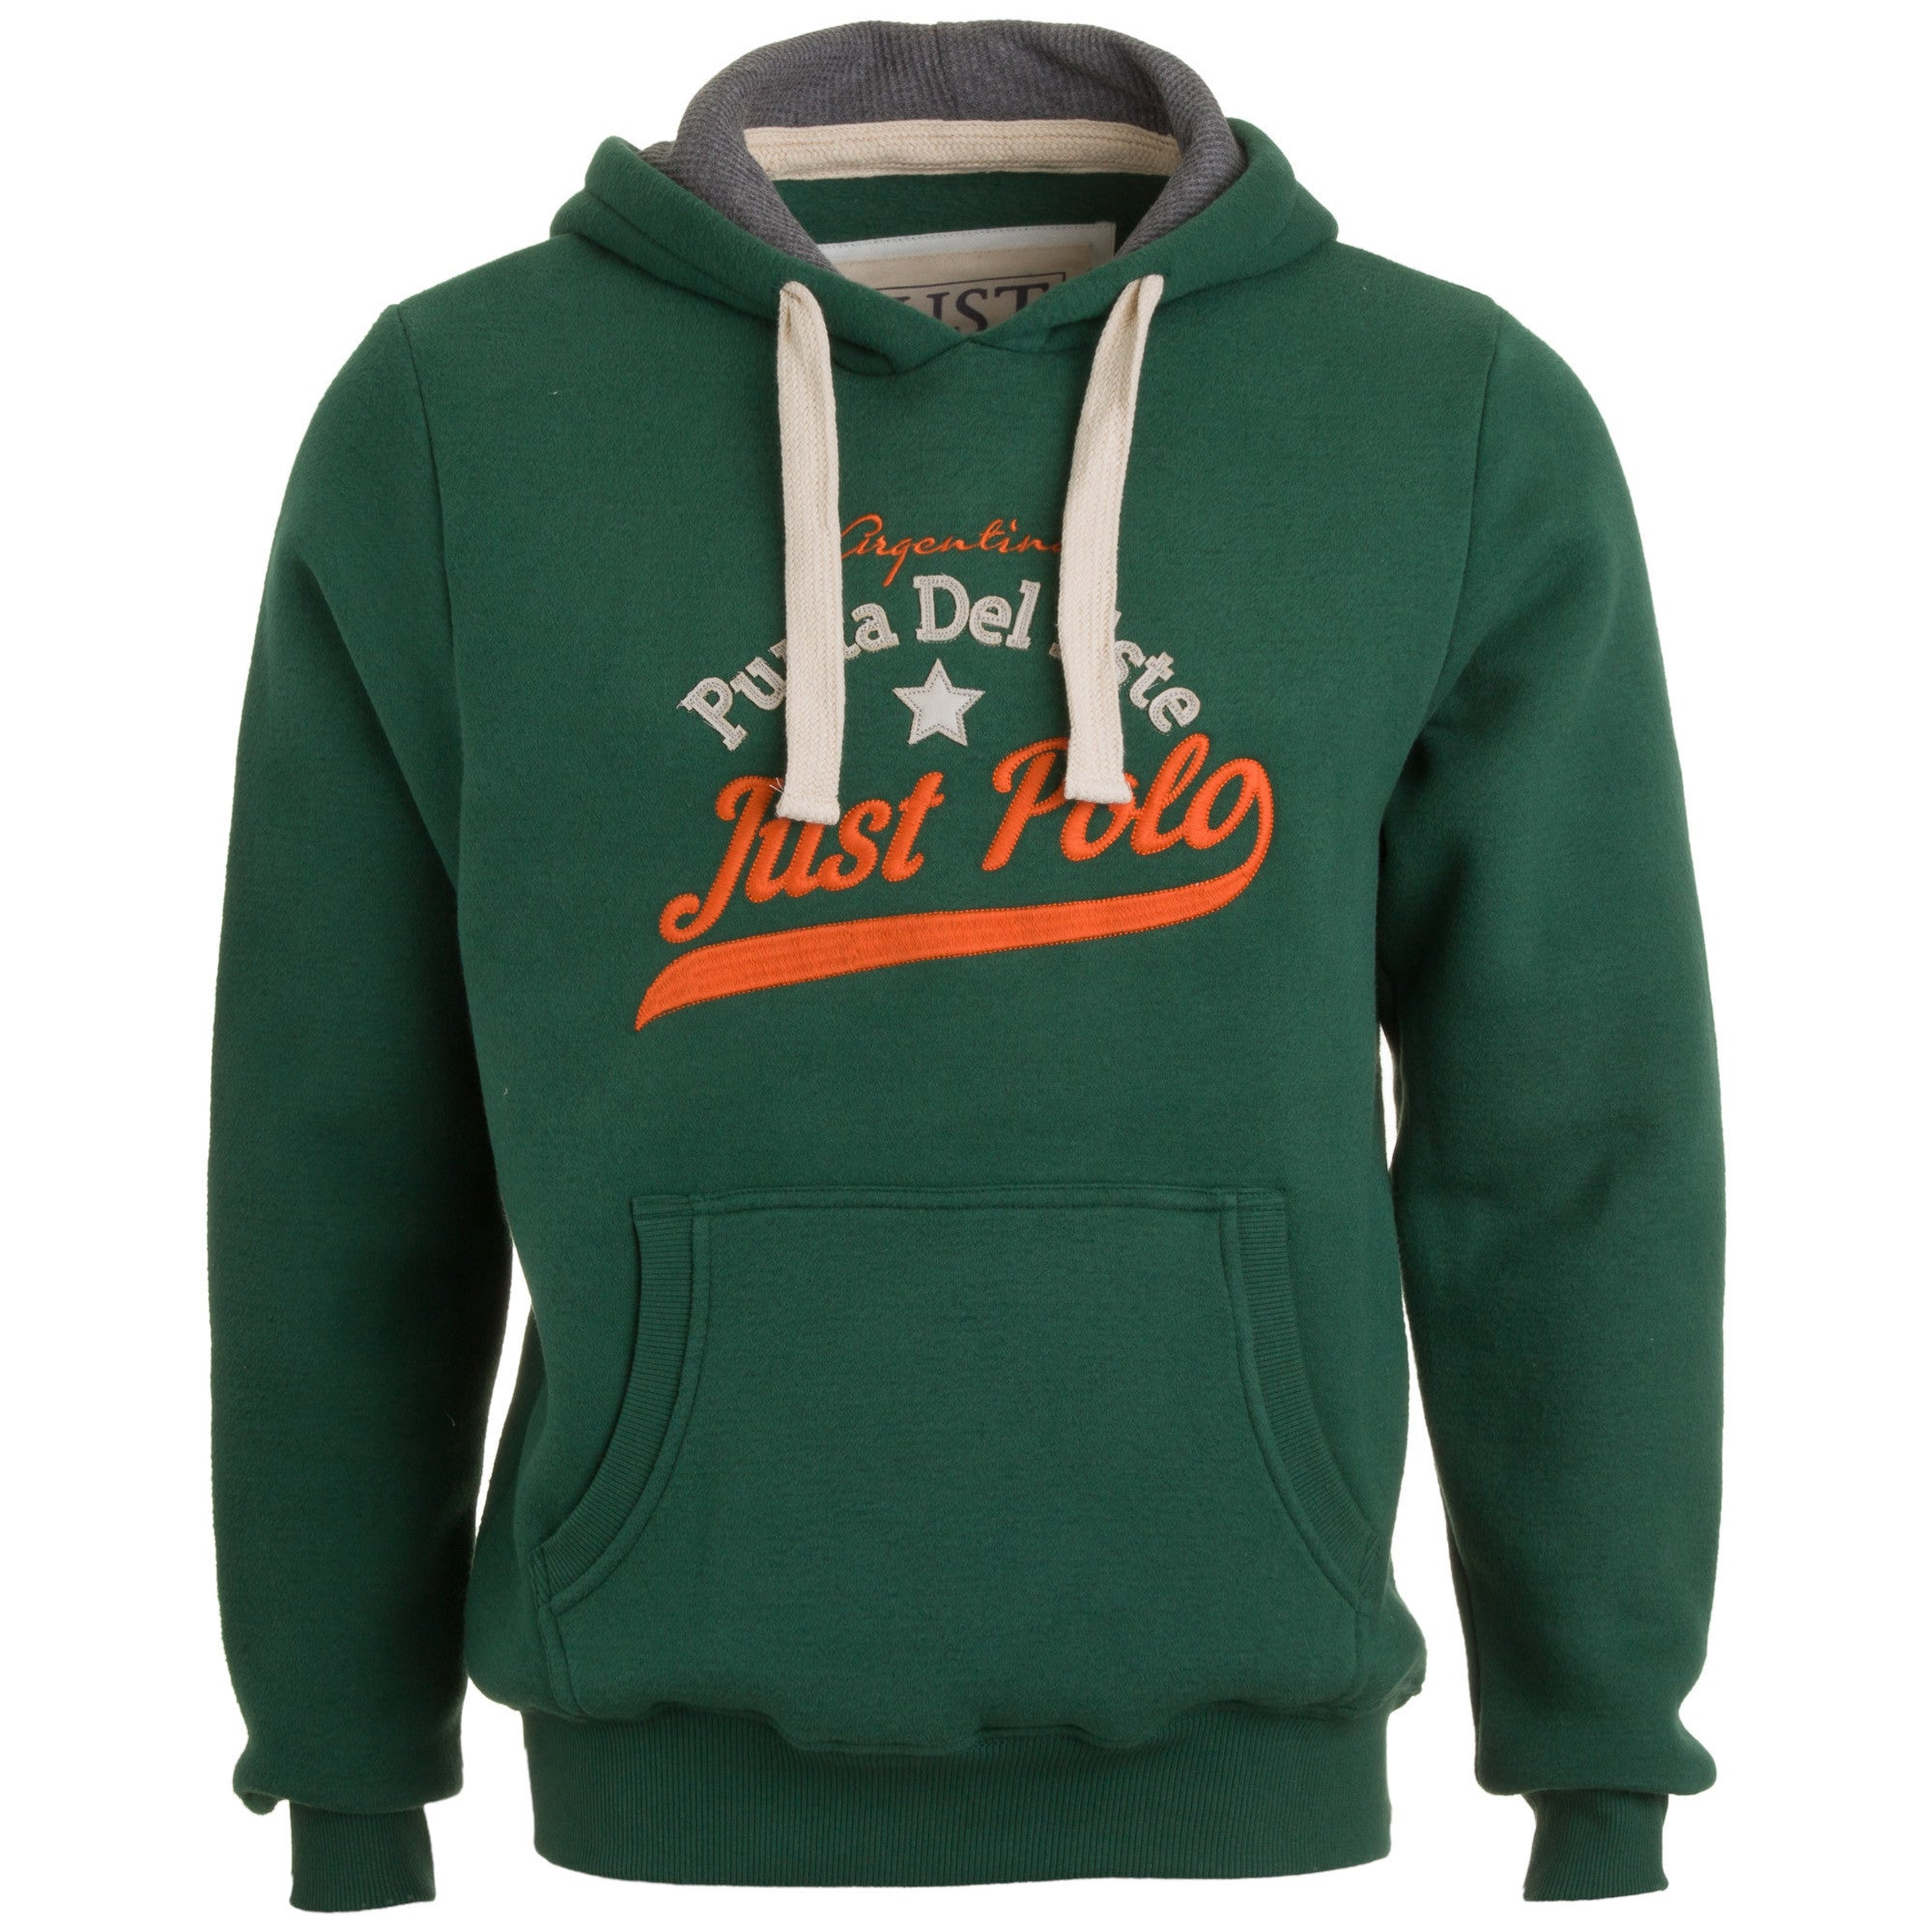 Ανδρική Μπλούζα Hoodie ''Just Man'' Just Polo - brands4all - 1